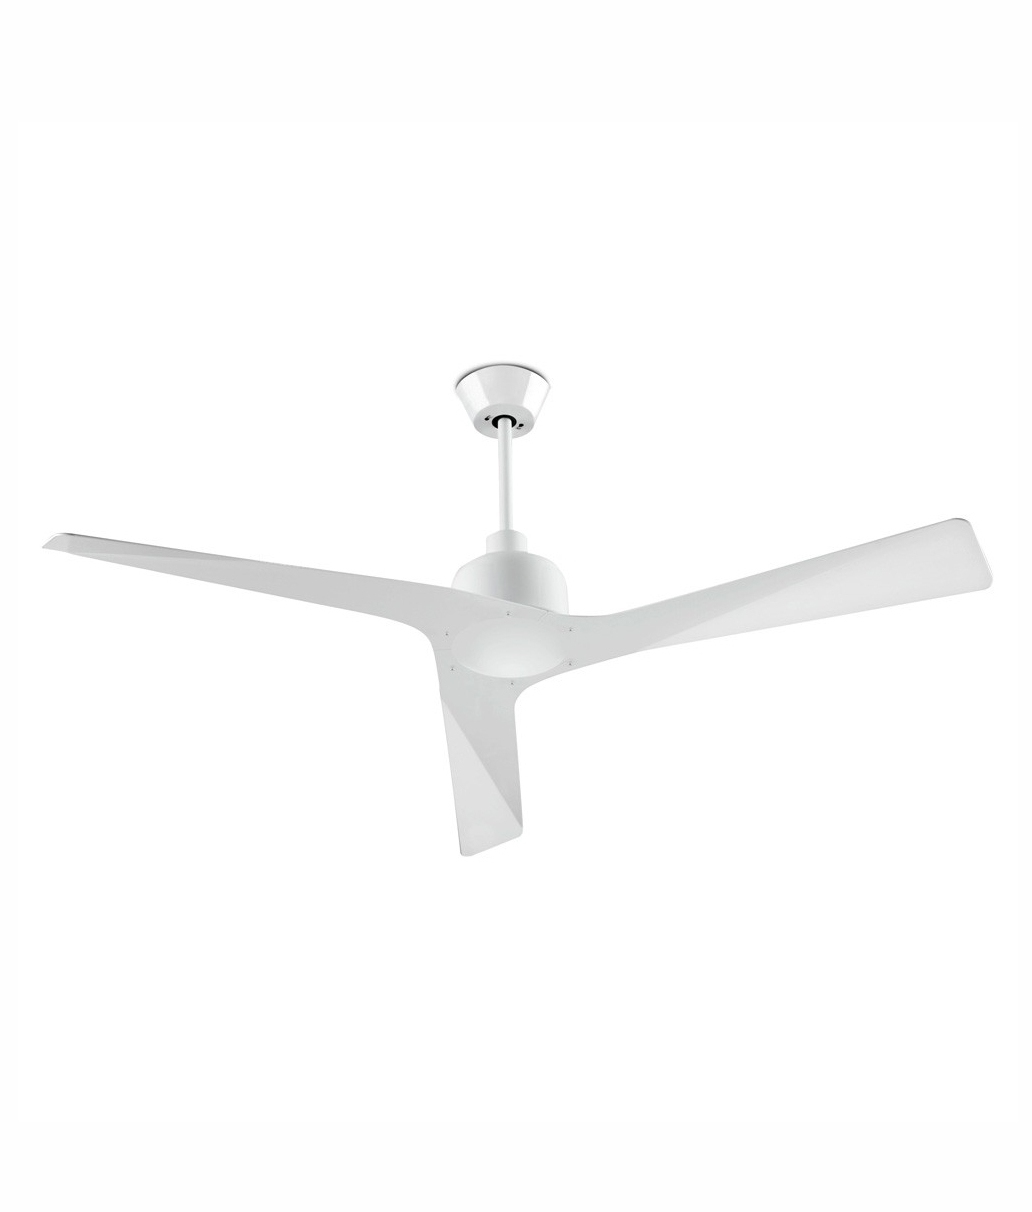 ultra modern white ceiling fan -